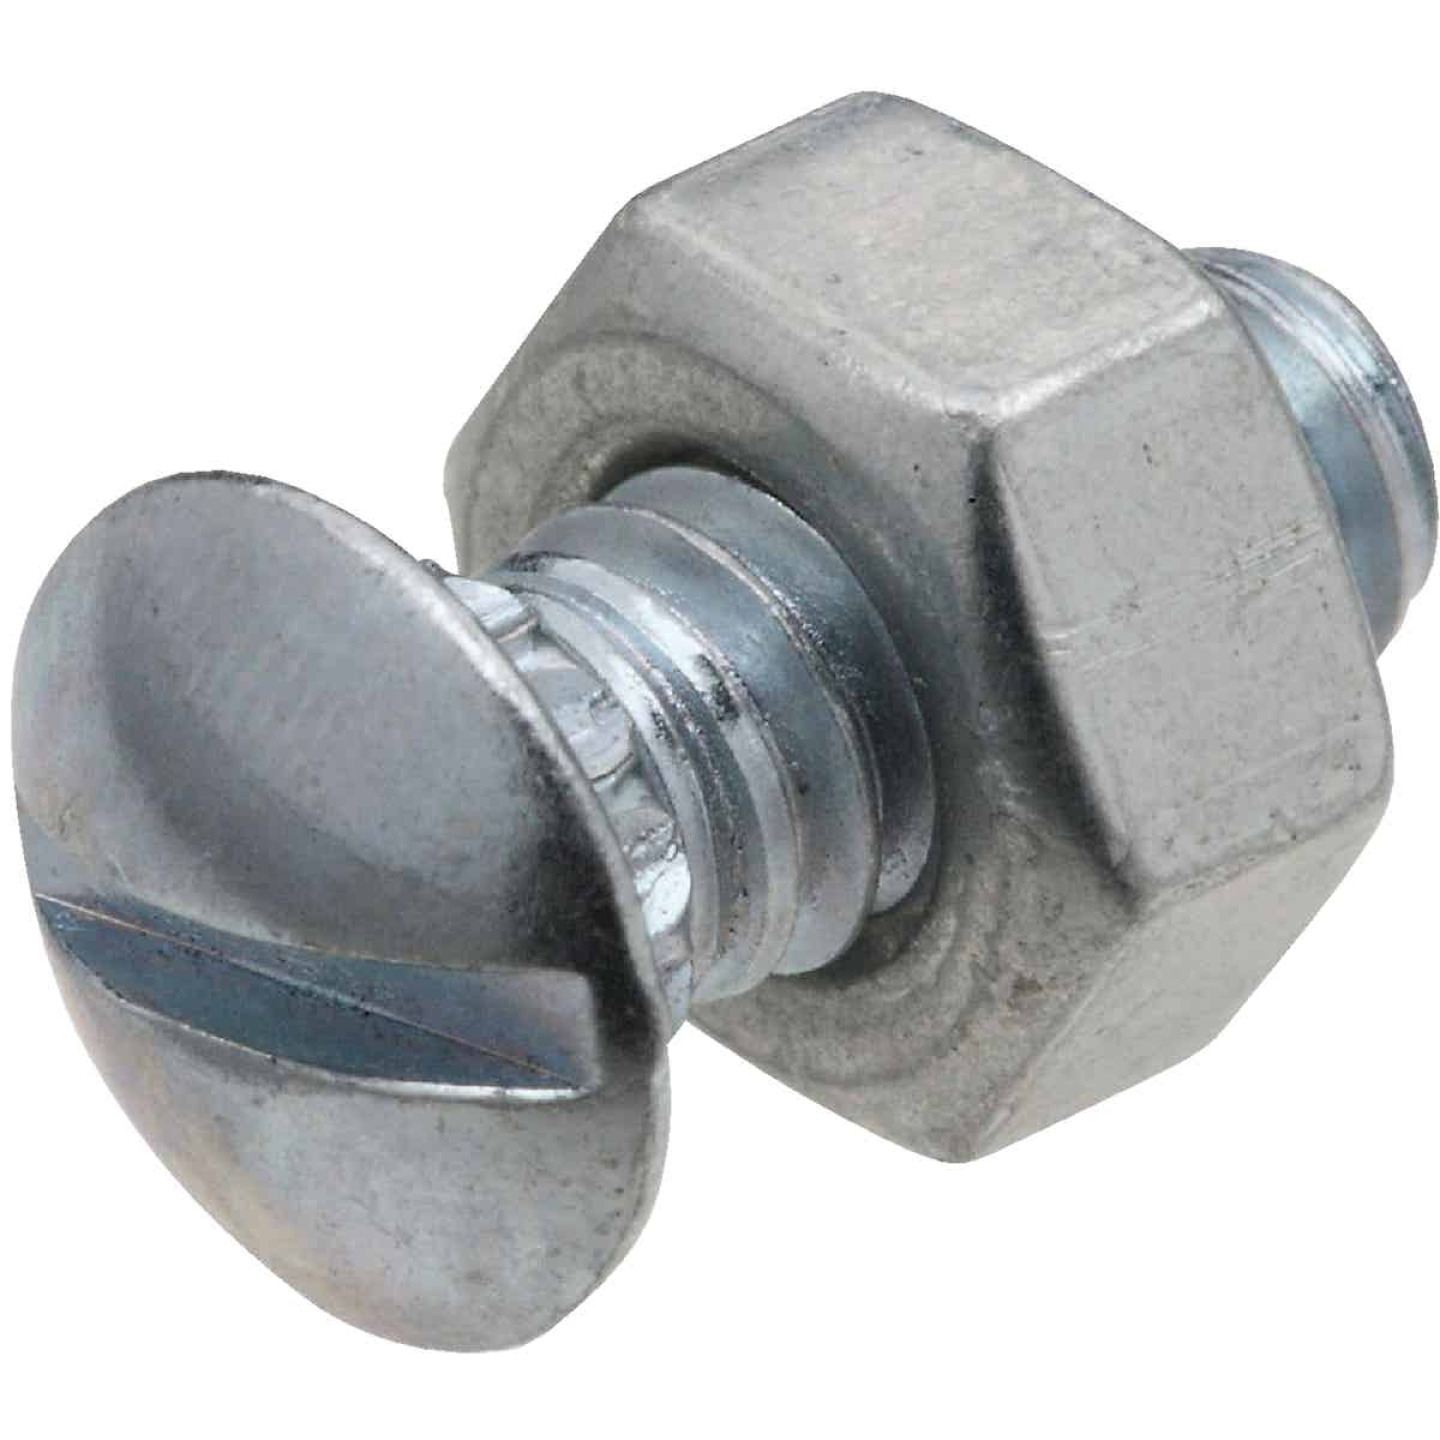 National 1/4 In. x 1/2 In. Zinc Ribbed Neck Bolt & Nut (12 Ct.) Image 1